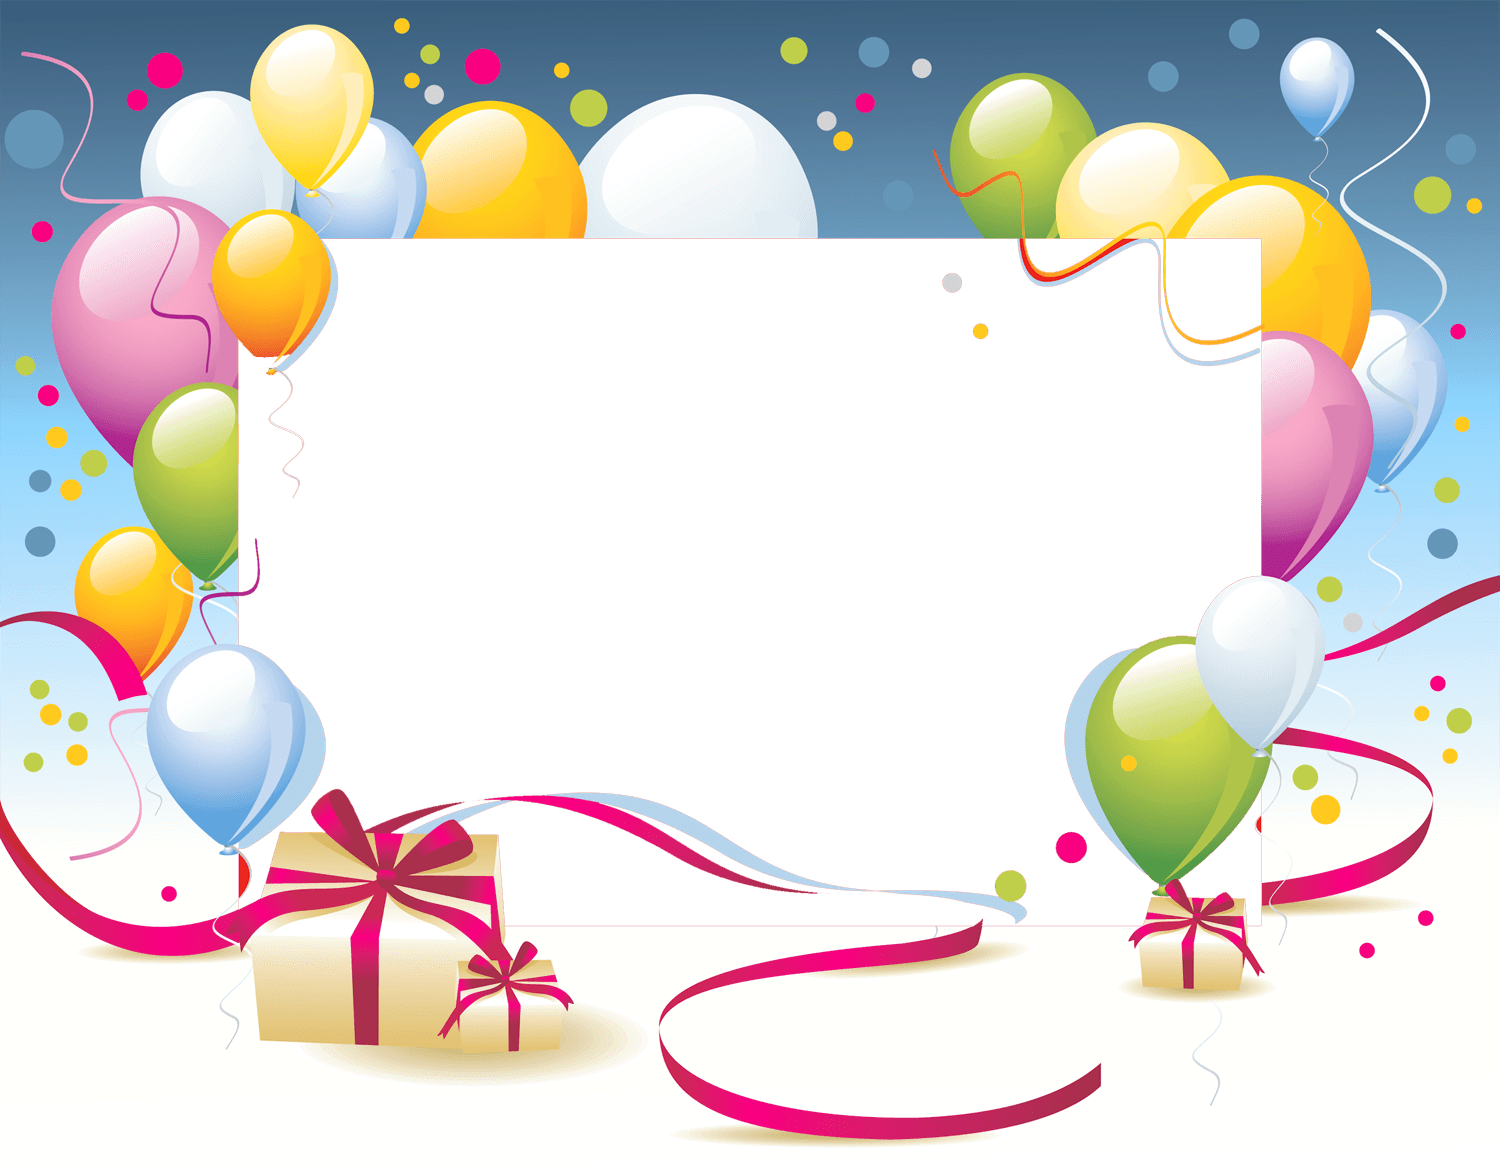 Card template transparent stickpng. Happy birthday background png jpg free